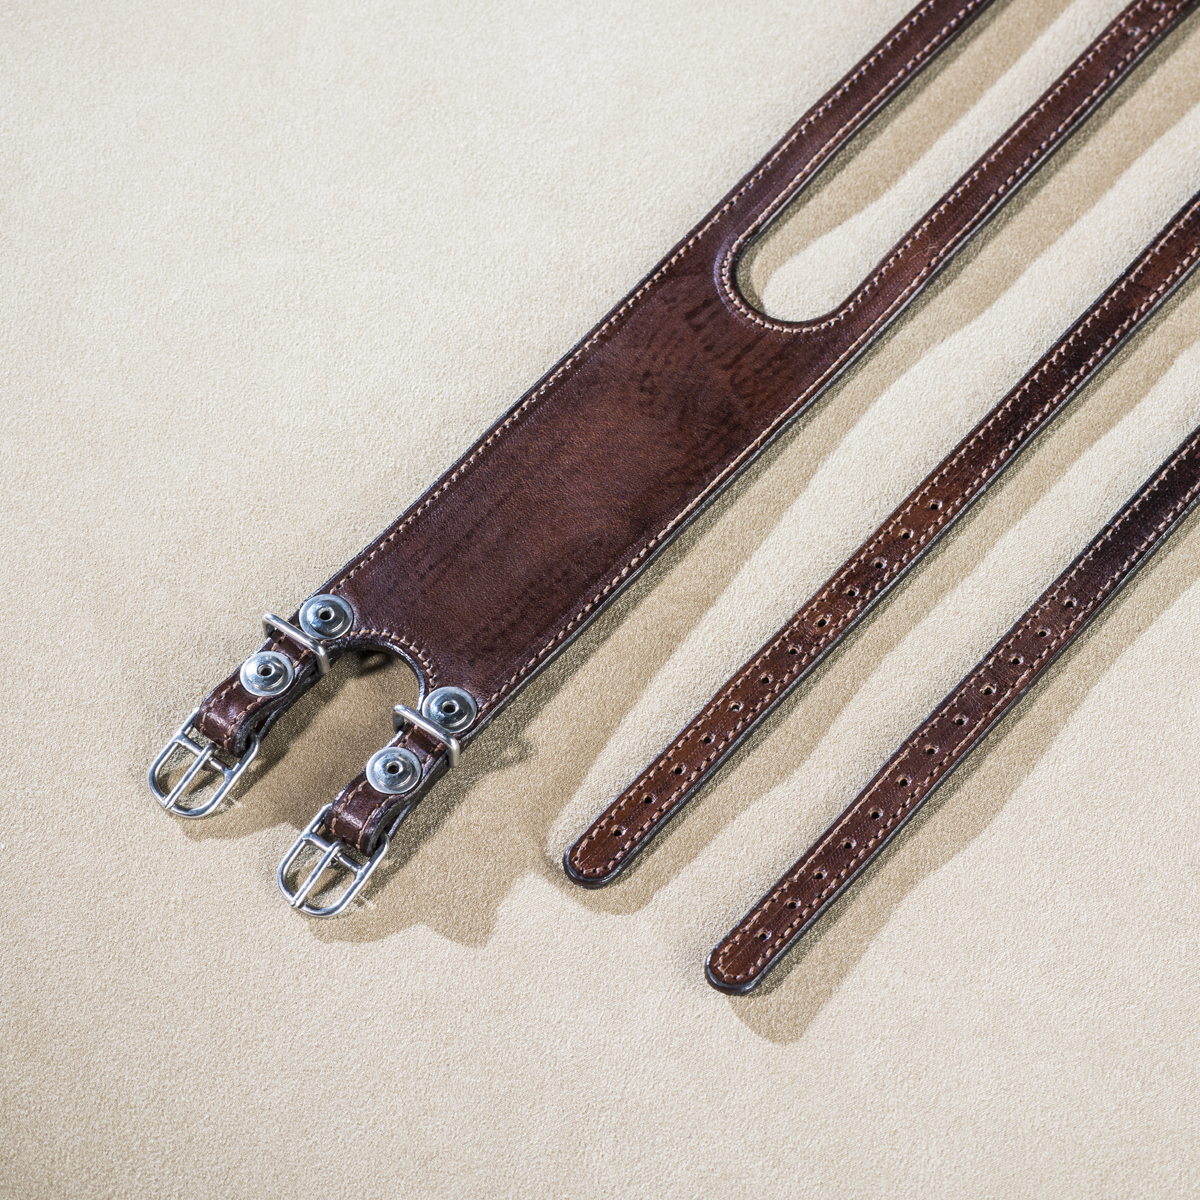 Leather straps for fixed gear Brown 4.